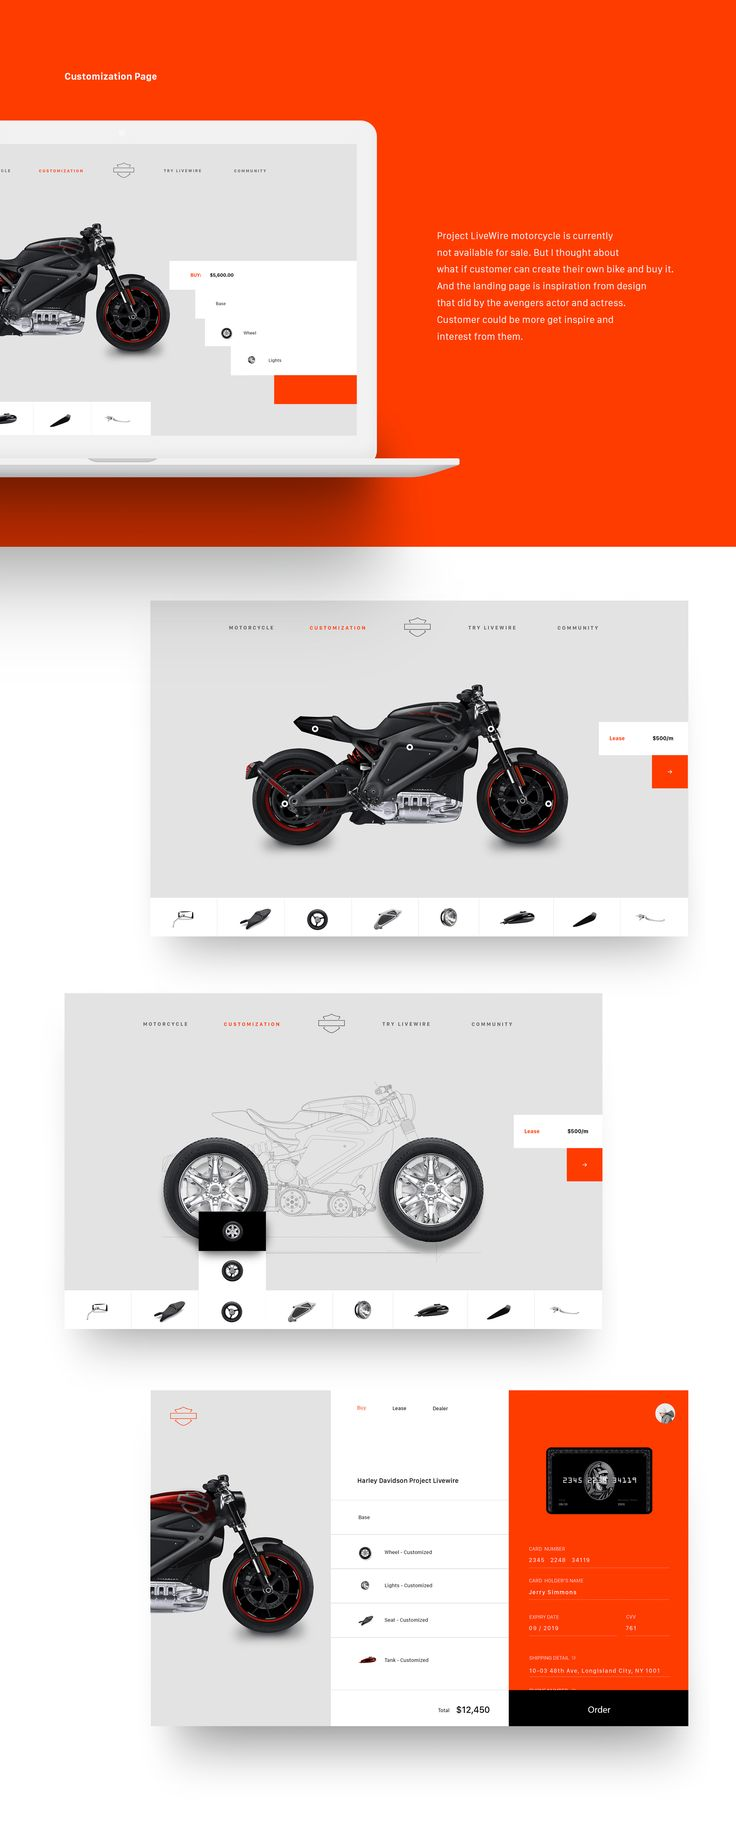 Harley Davidson - Project Livewire Website Redesign on Behance